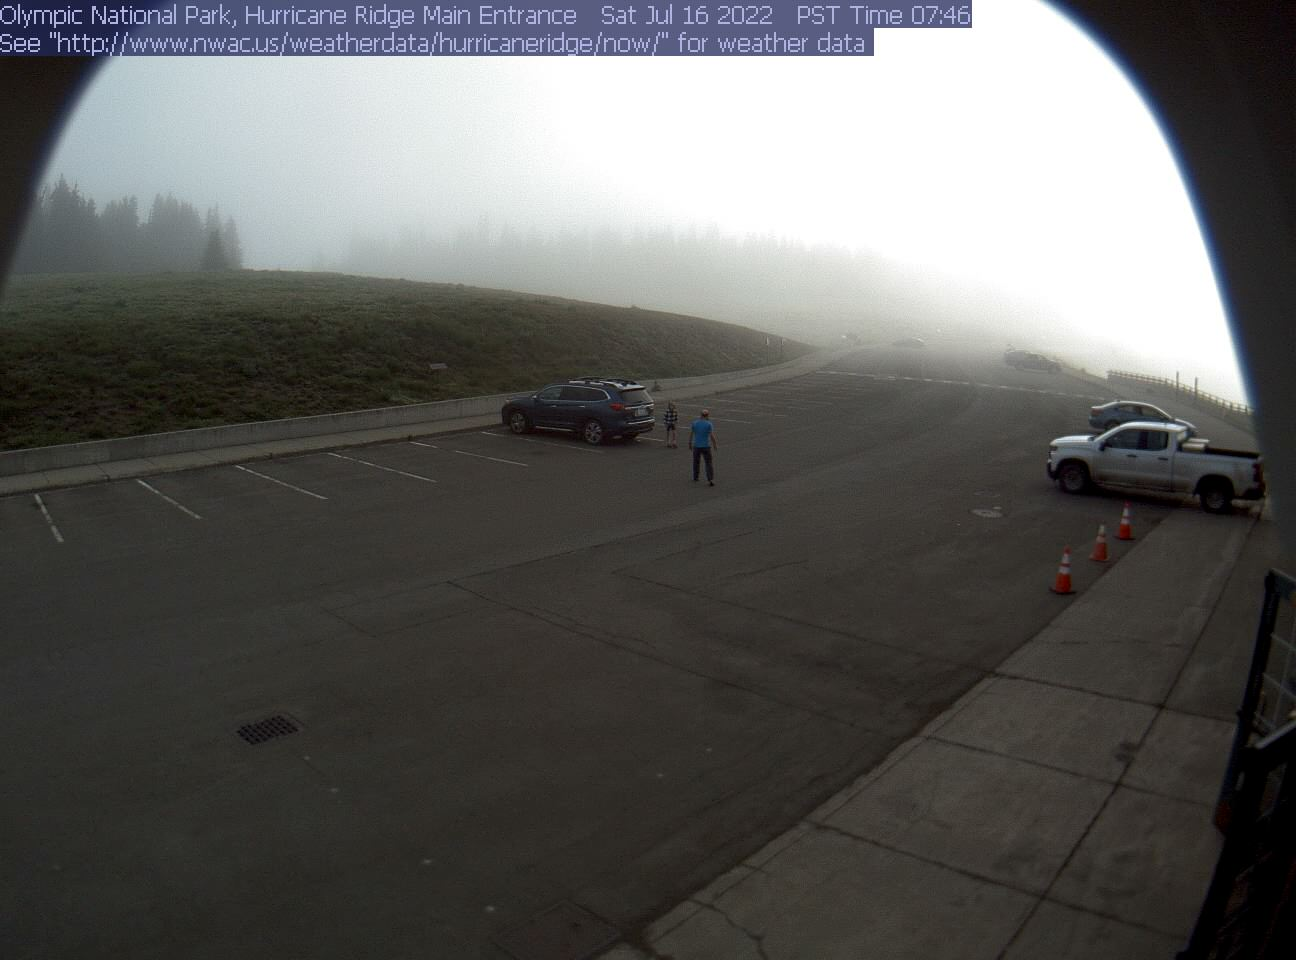 Hurricane Ridge Webcam West